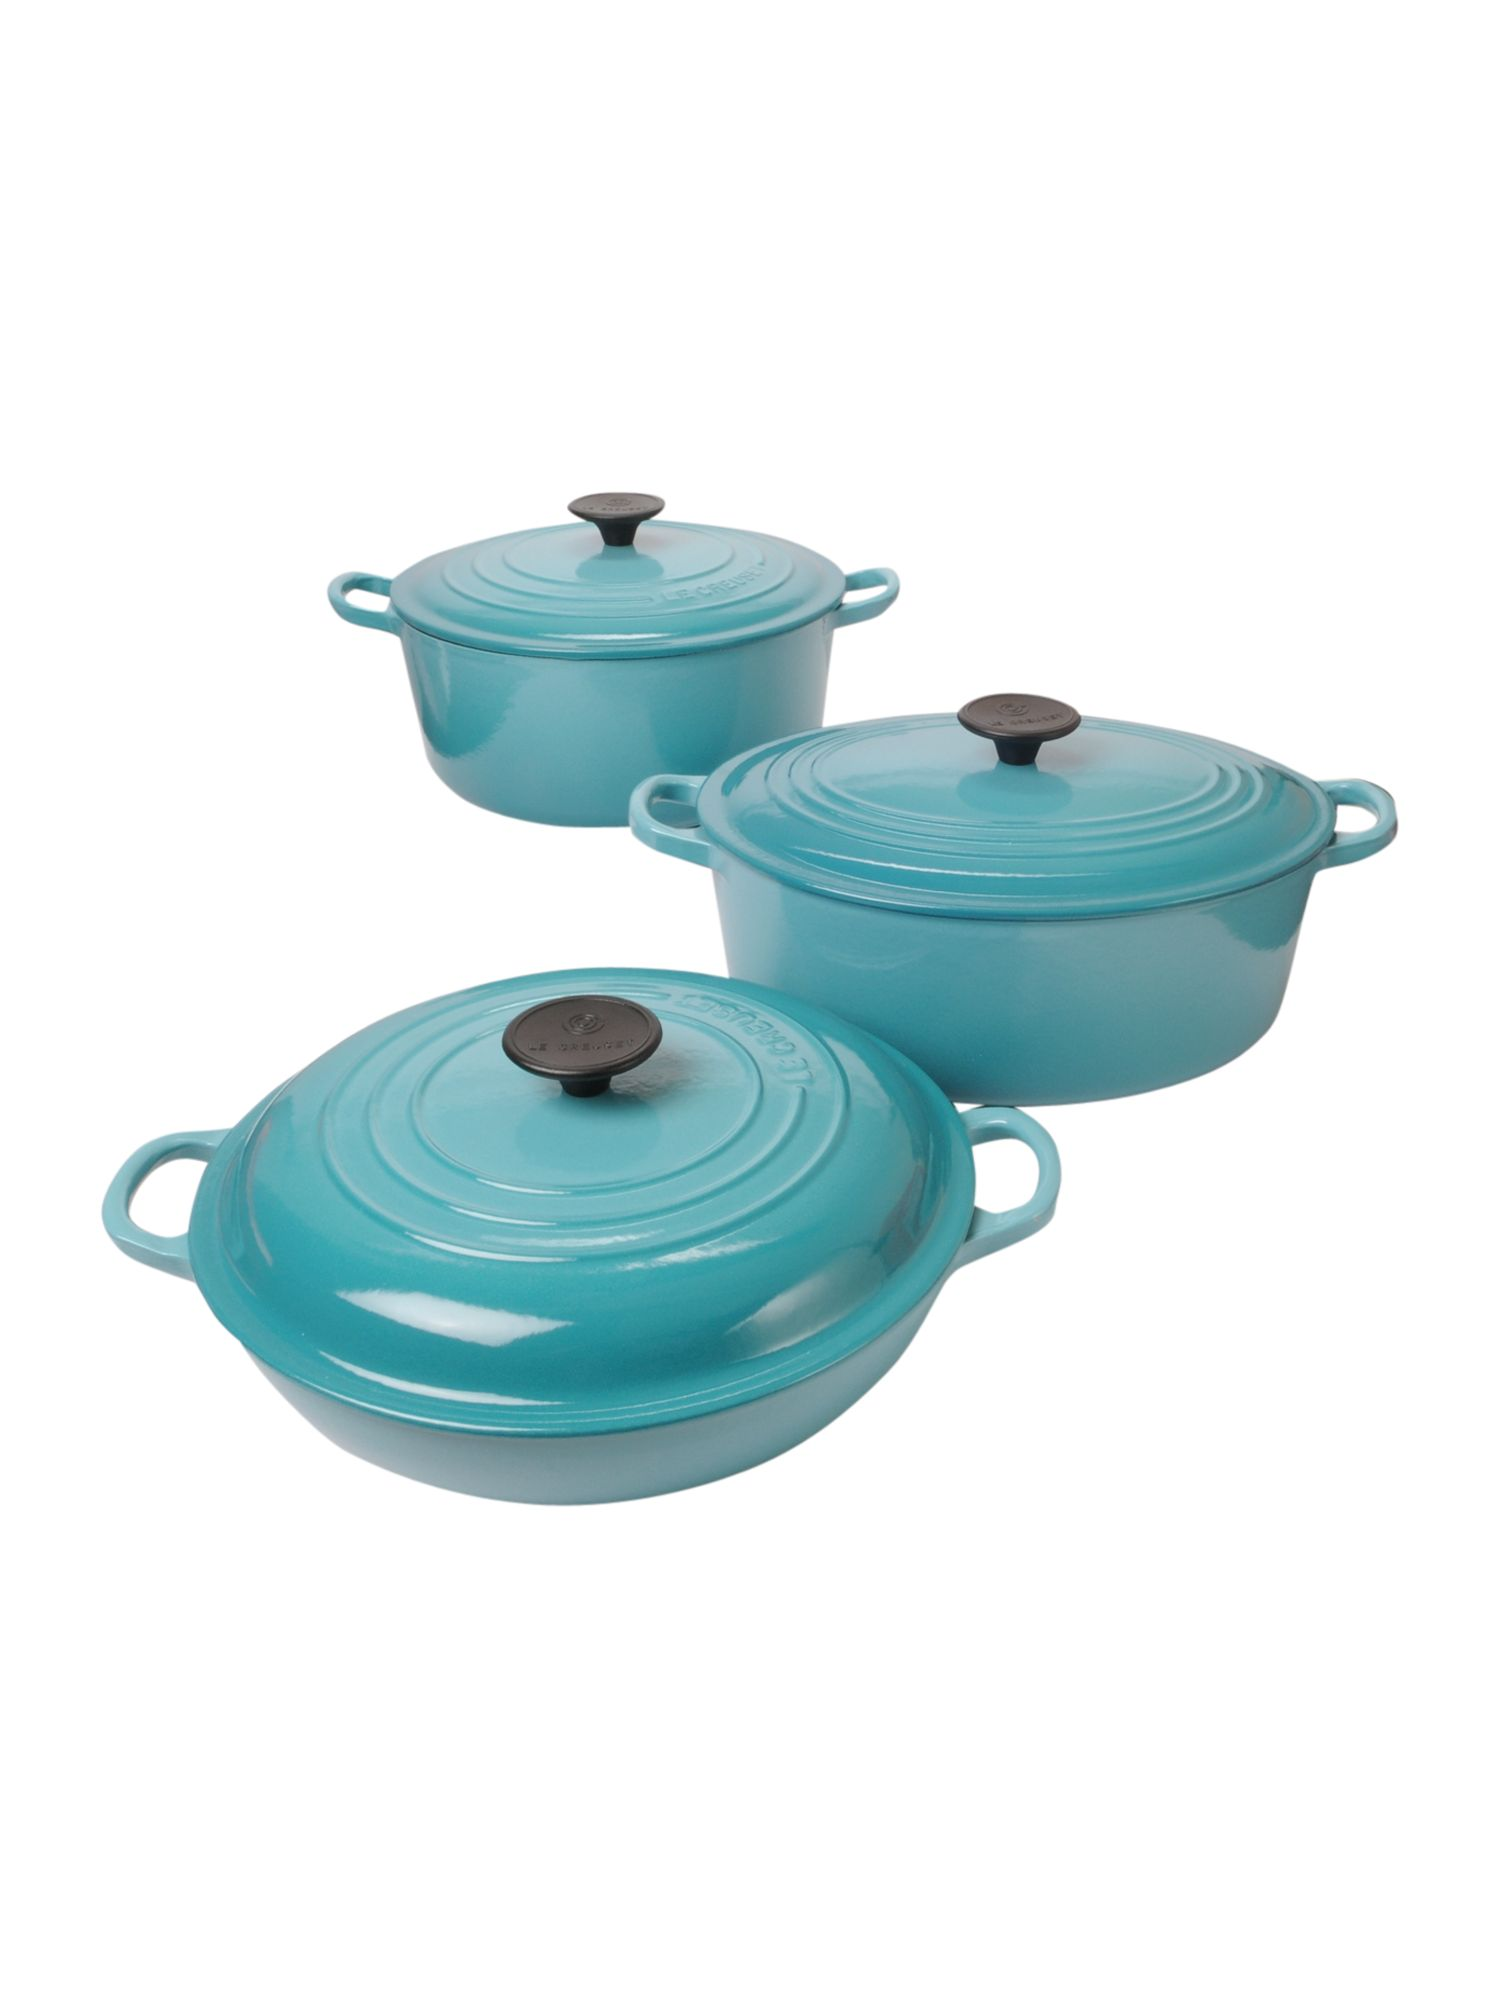 Cookware in Teal